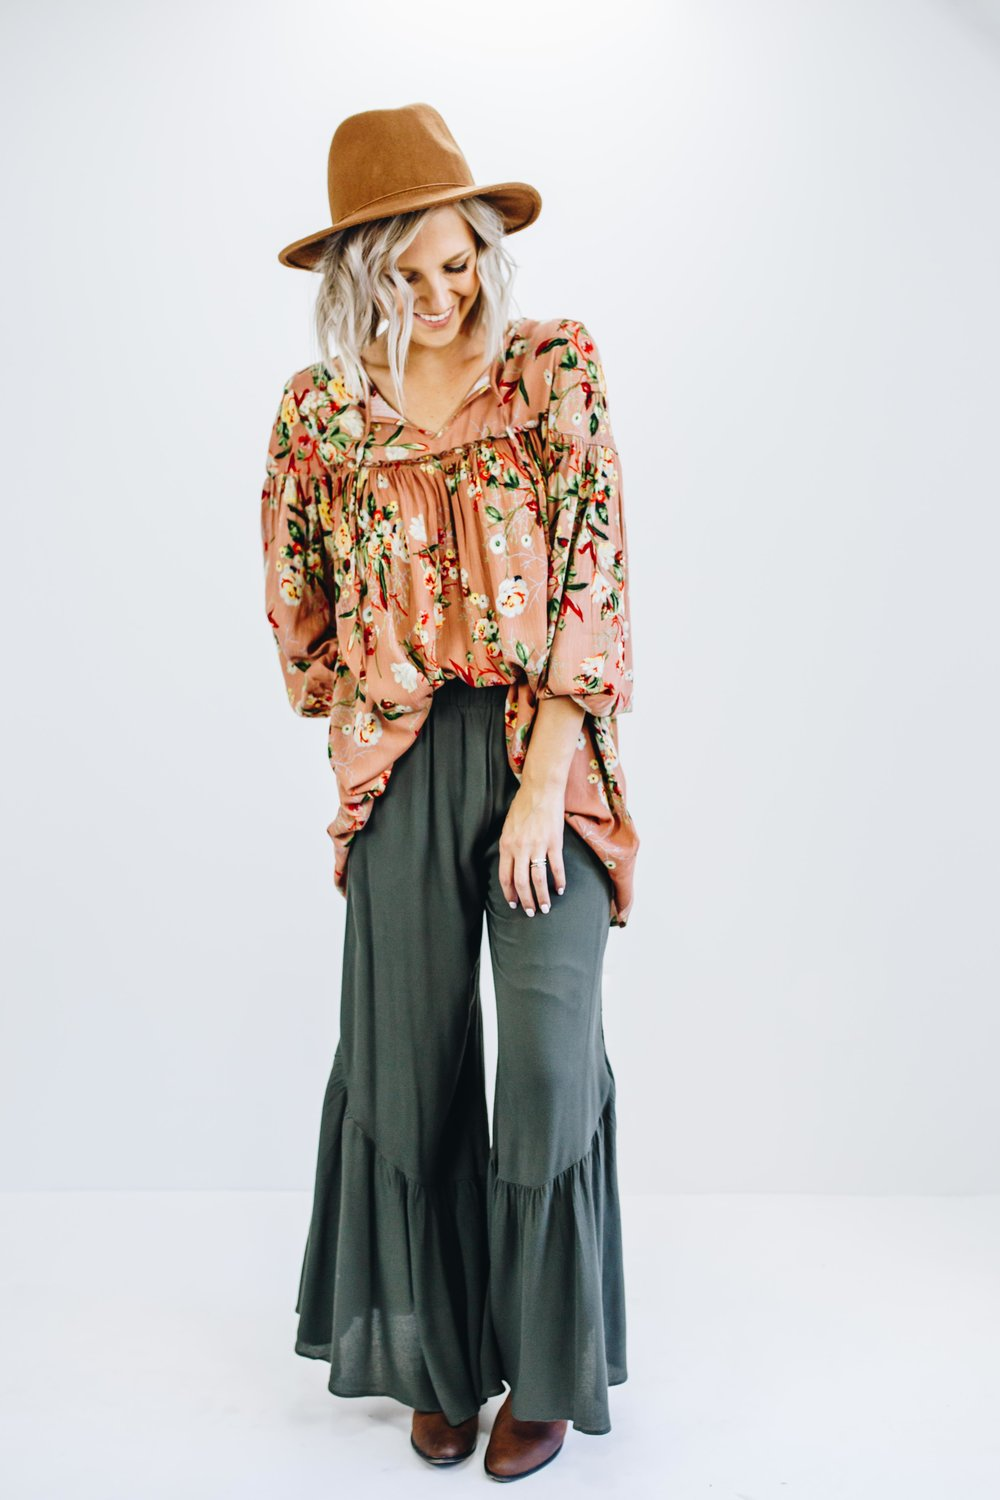 Styles 2 you - Online Clothing Boutique